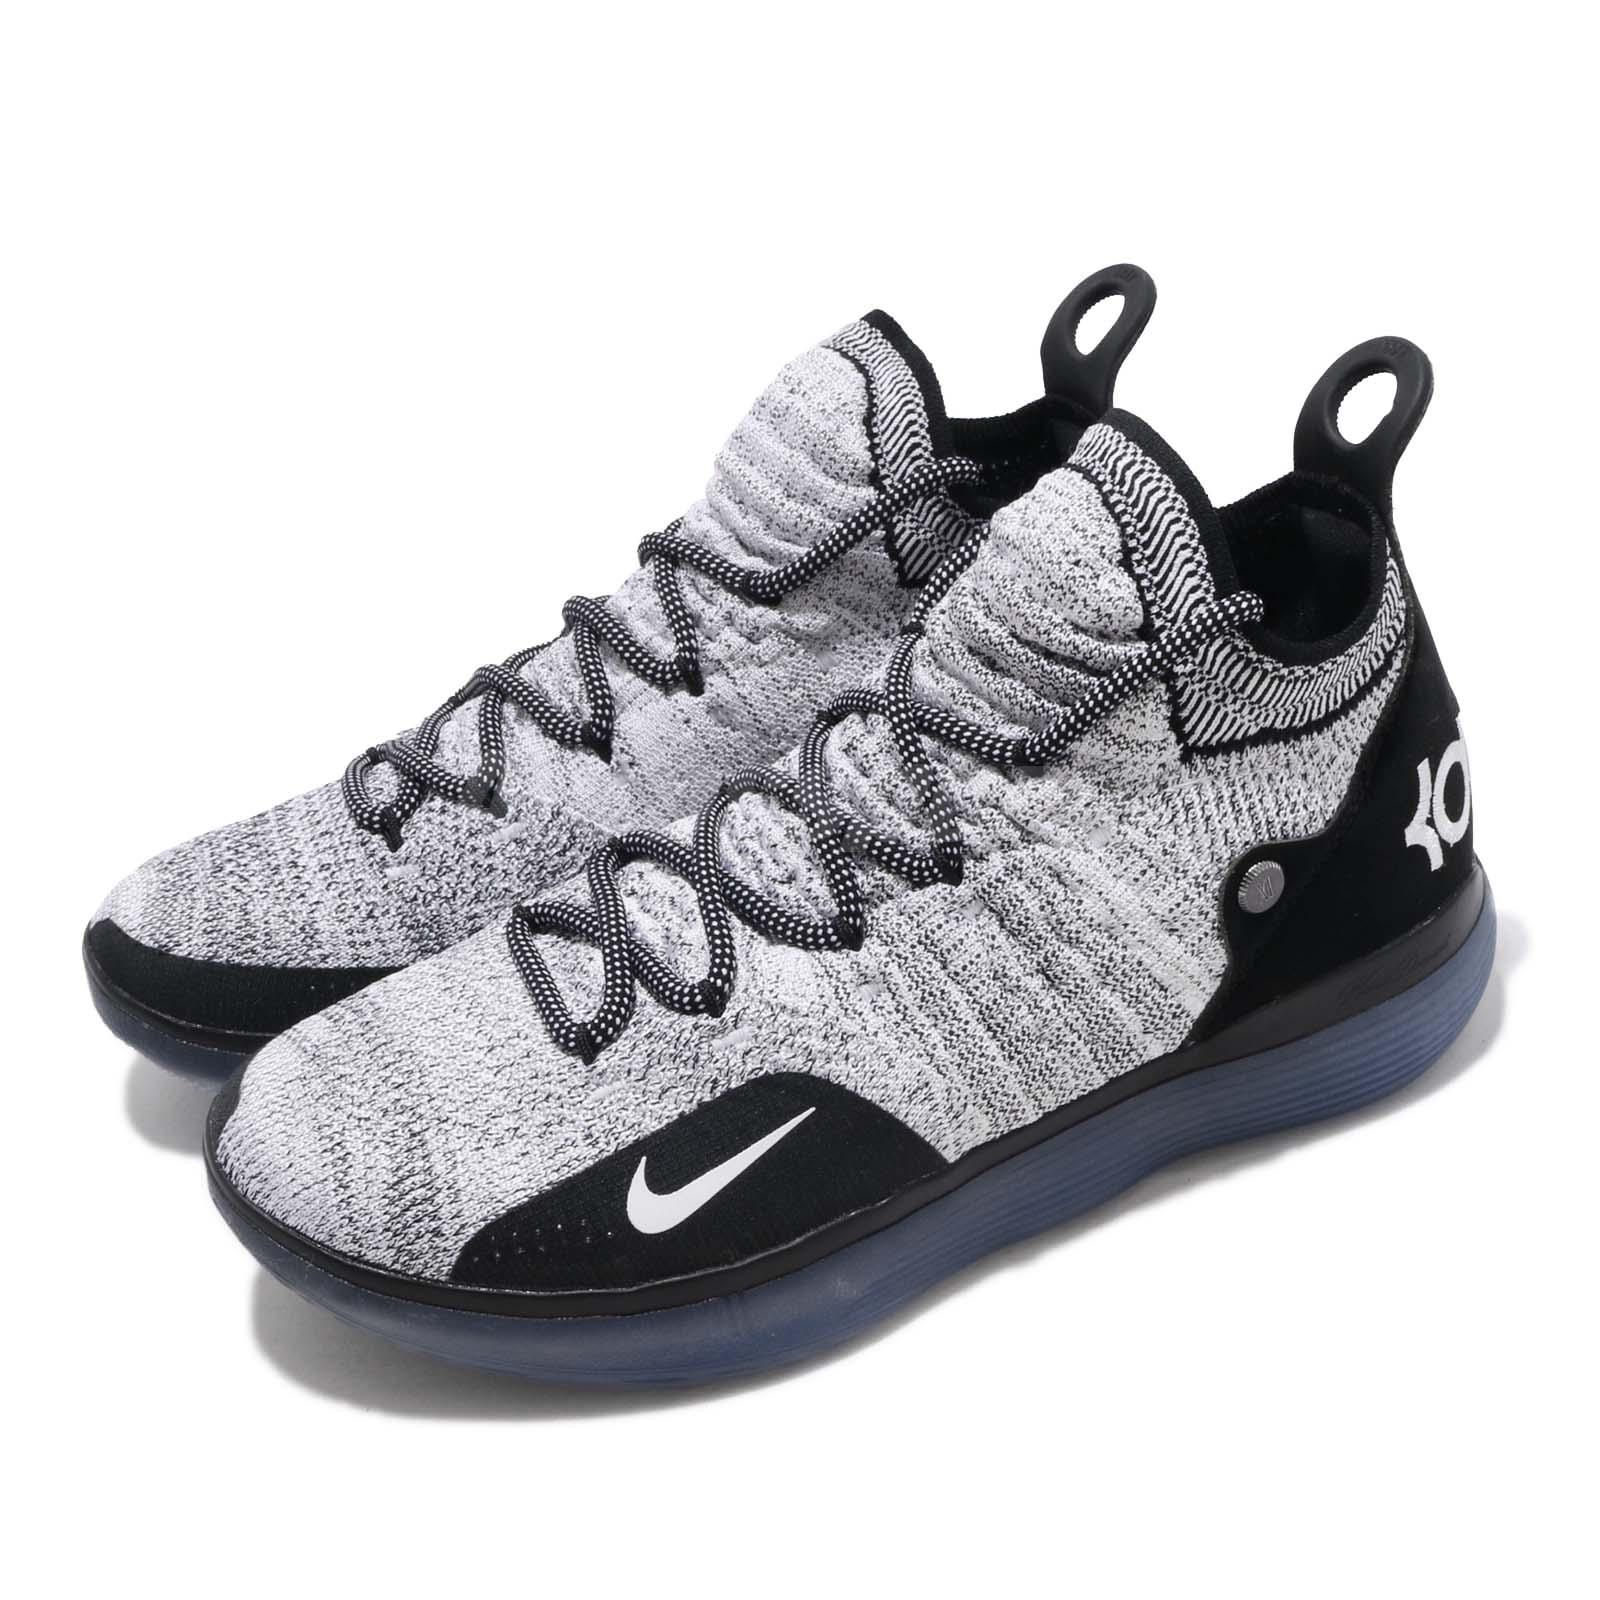 513d75126182 Details about Nike Zoom KD 11 EP Black White Blue Kevin Durant Men  Basketball Shoes AO2605-006